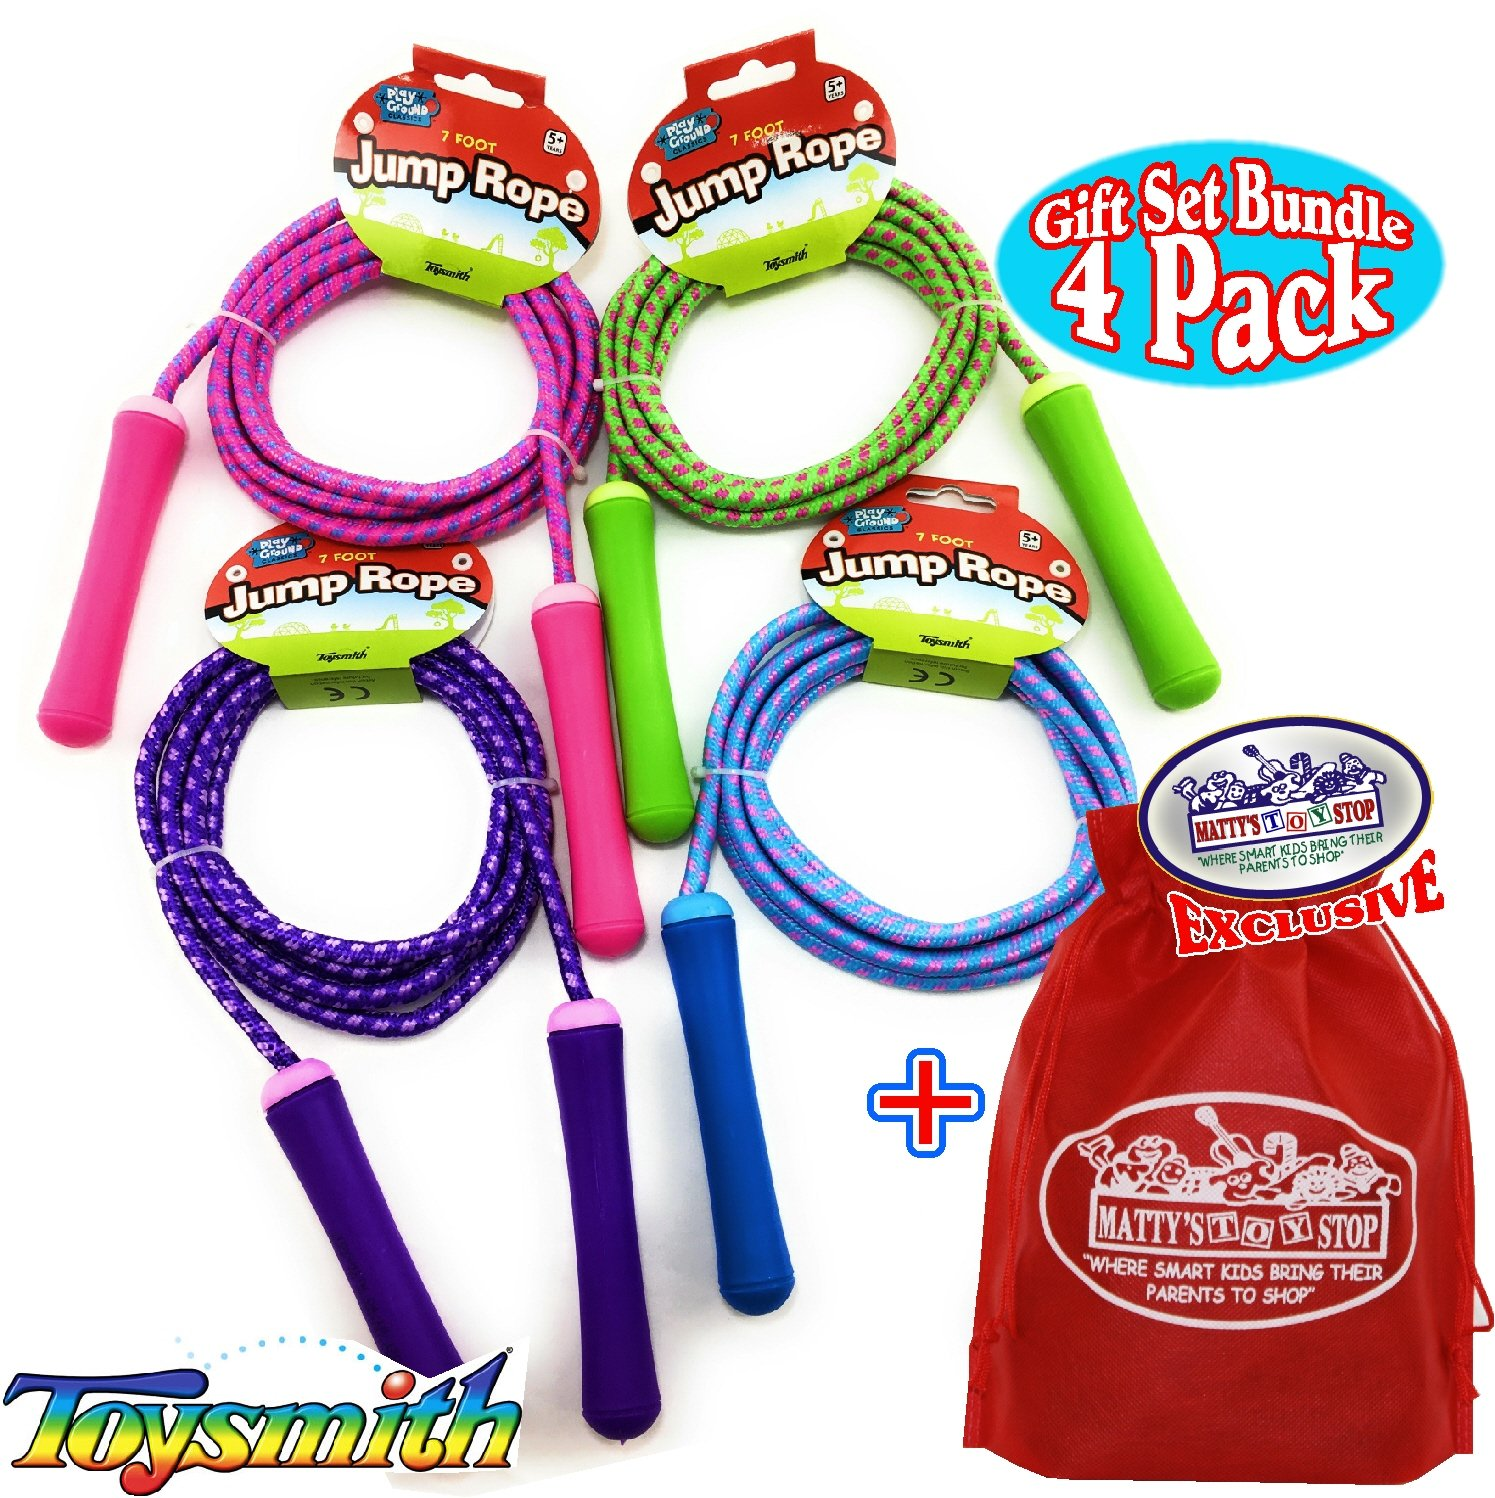 Toysmith Jump Ropes 7-Foot (7') Pink, Green, Purple & Blue Gift Set Party Bundle with Bonus Matty's Toy Stop Storage Bag - 4 Pack